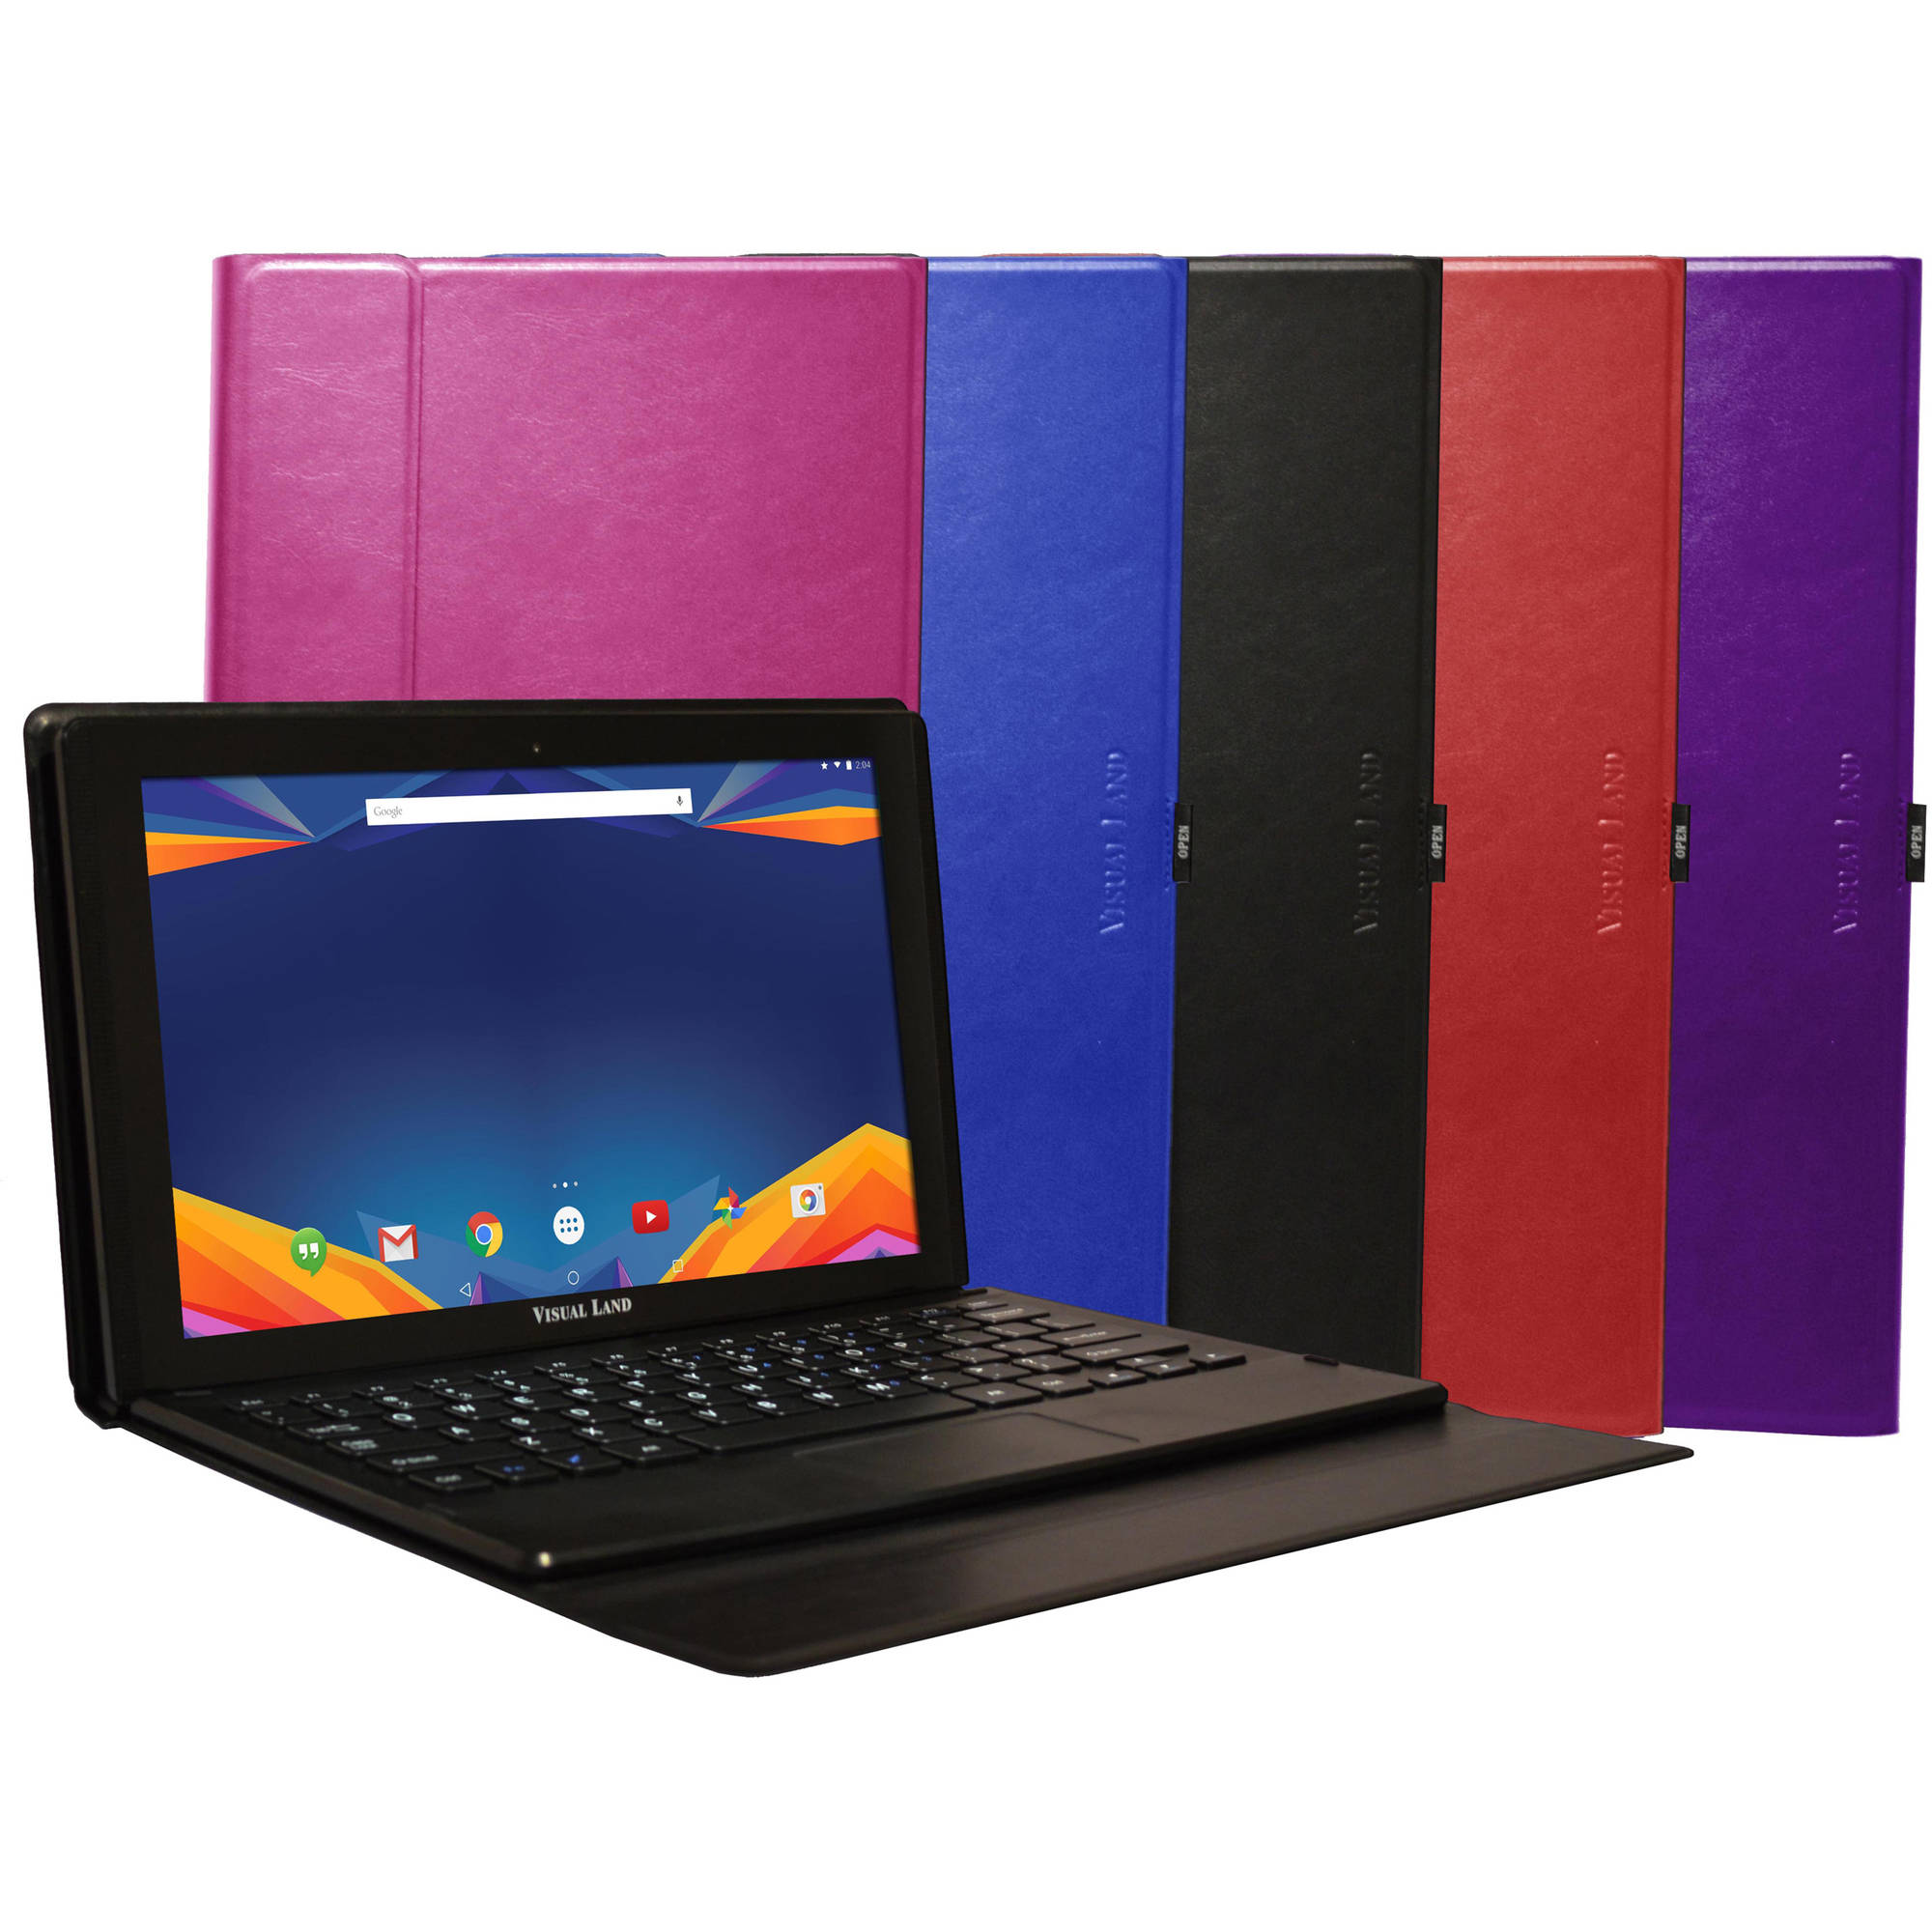 "Visual Land Prestige Prime with WiFi 11.6"" Touchscreen Tablet PC Featuring Android 5.0 (Lollipop) Operating System"